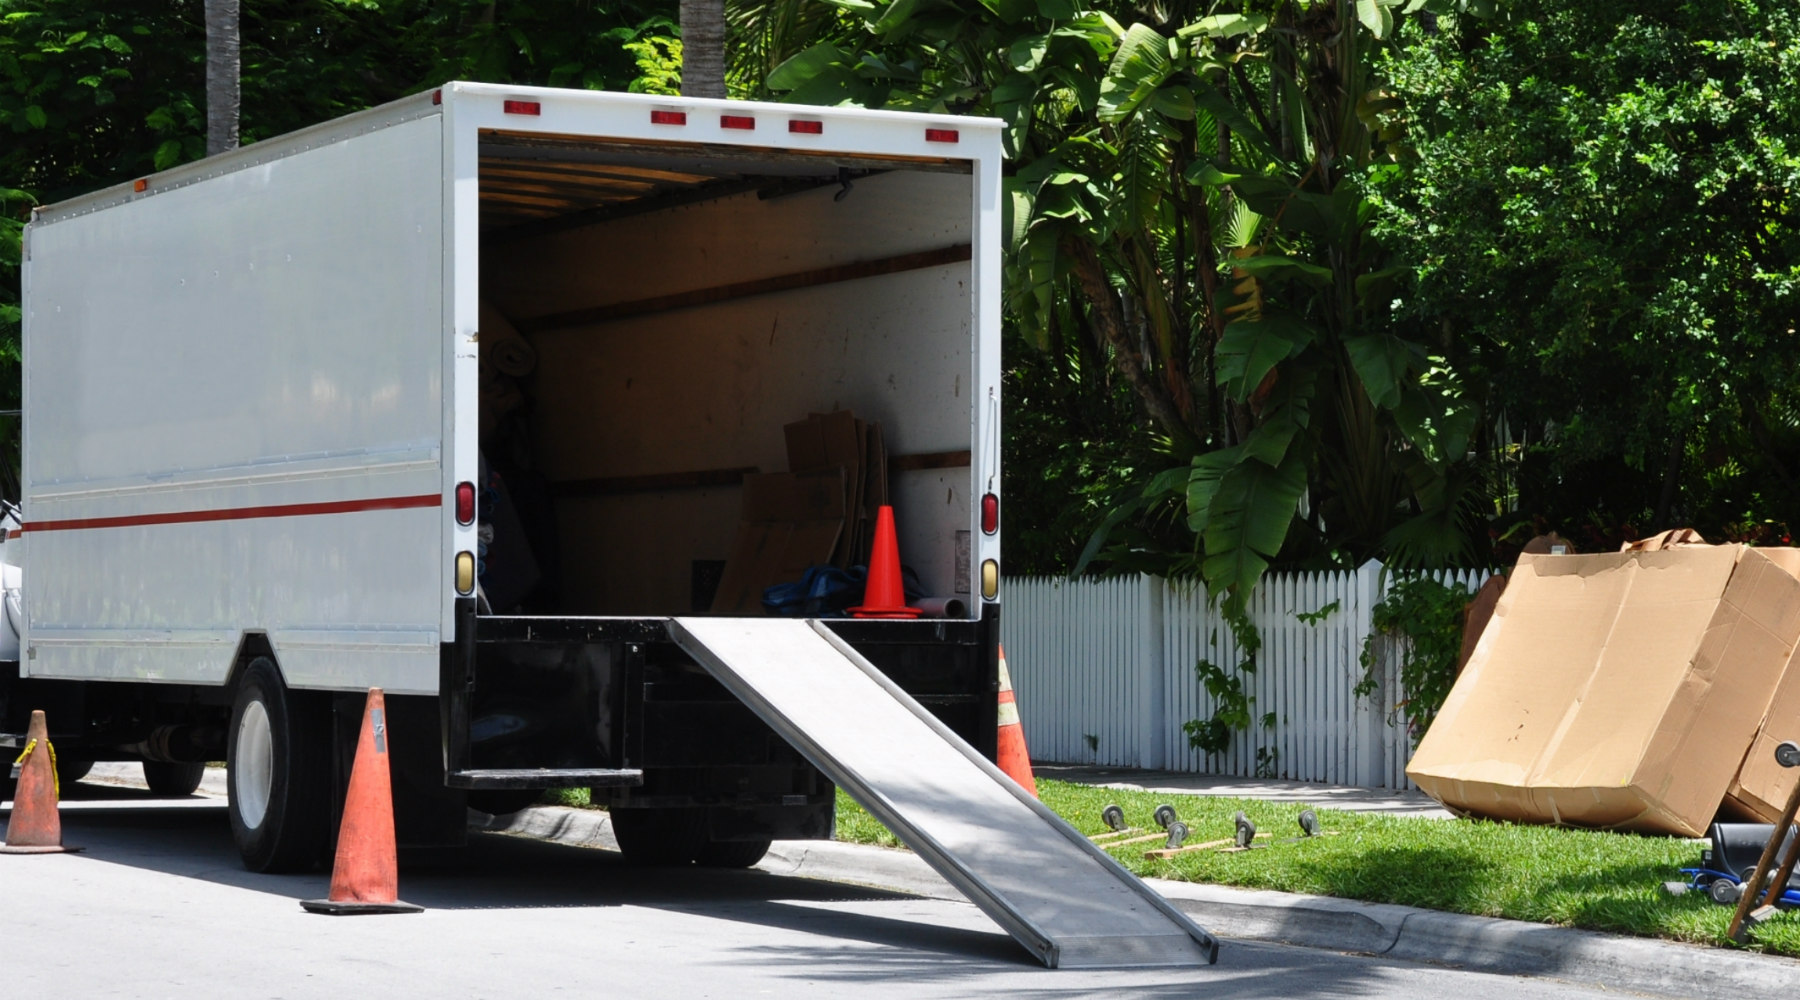 Moving truck with ramp and boxes